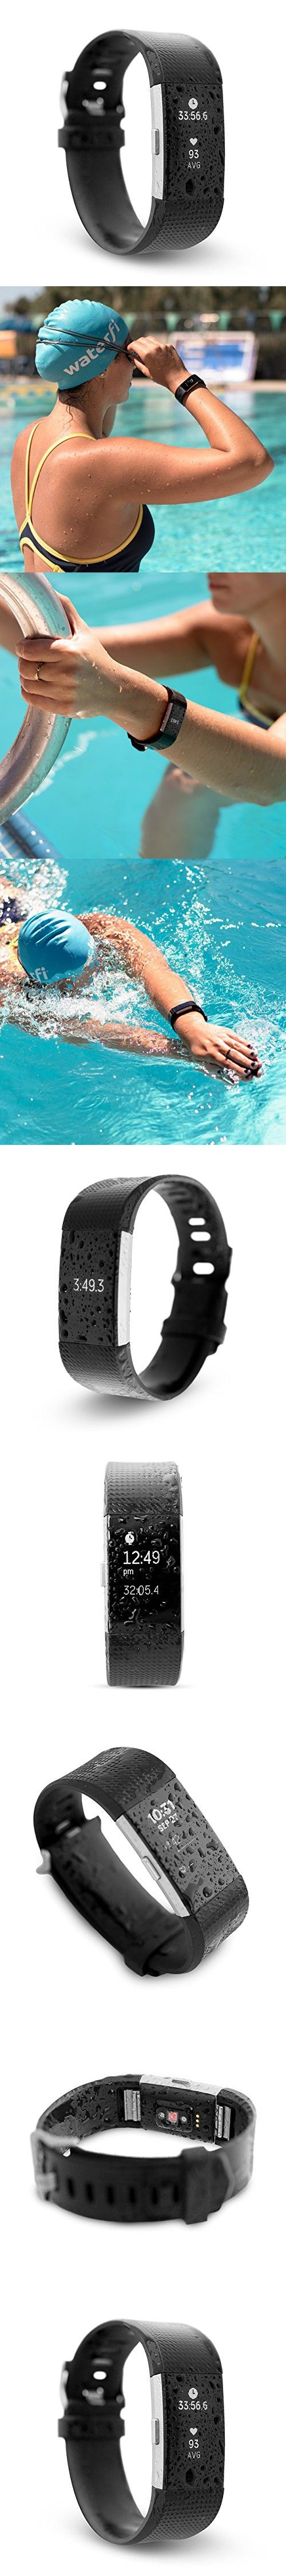 Waterfi Waterproof Fitbit Charge 2 - Silver/Black - Activity Tracker with Heart Rate Monitor (Large)